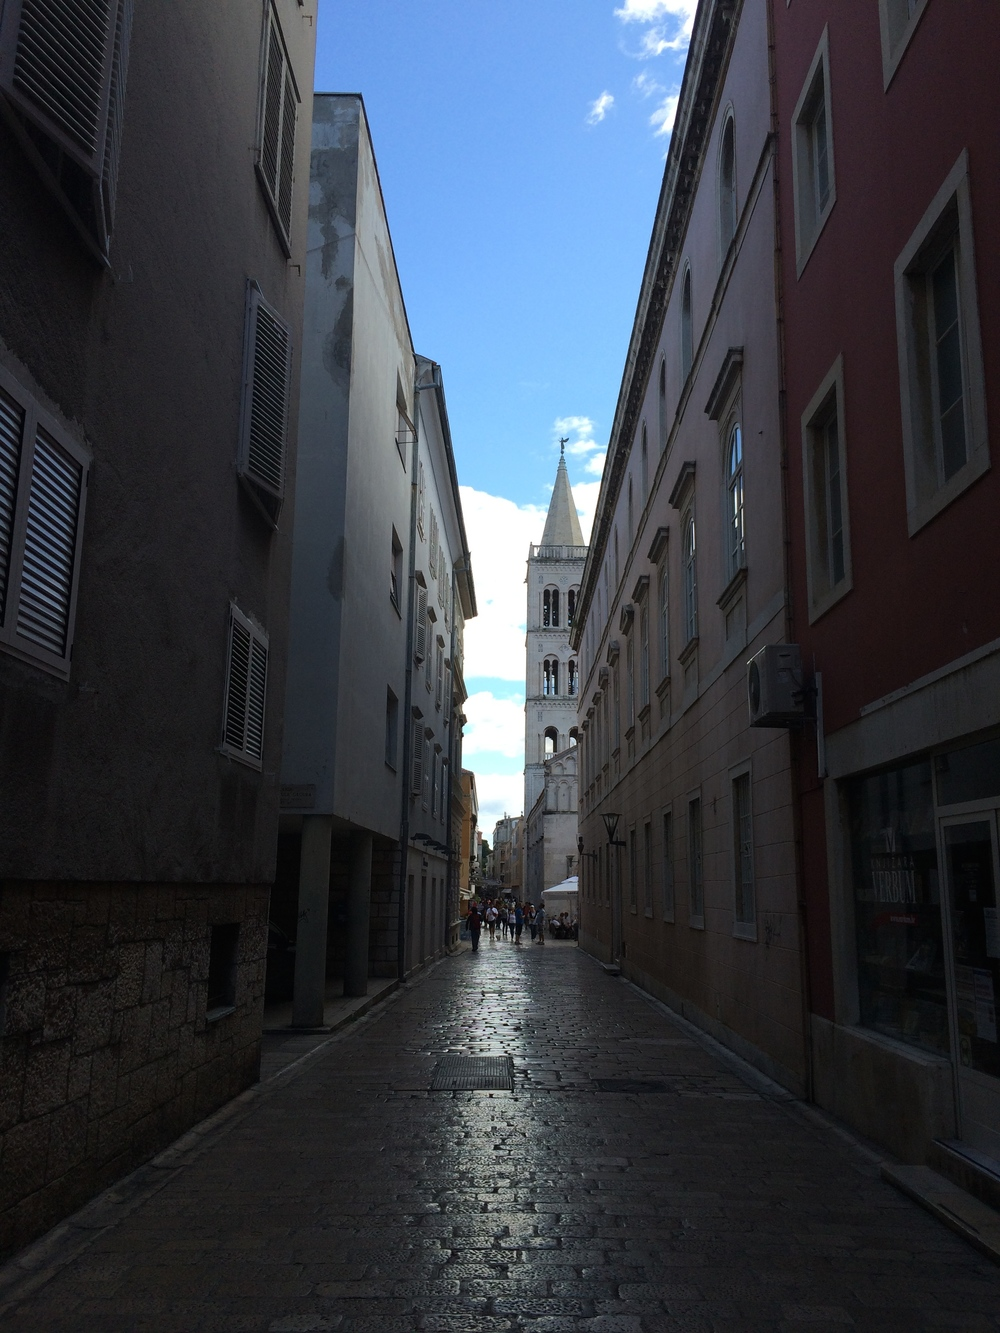 The streets of old town Zadar.